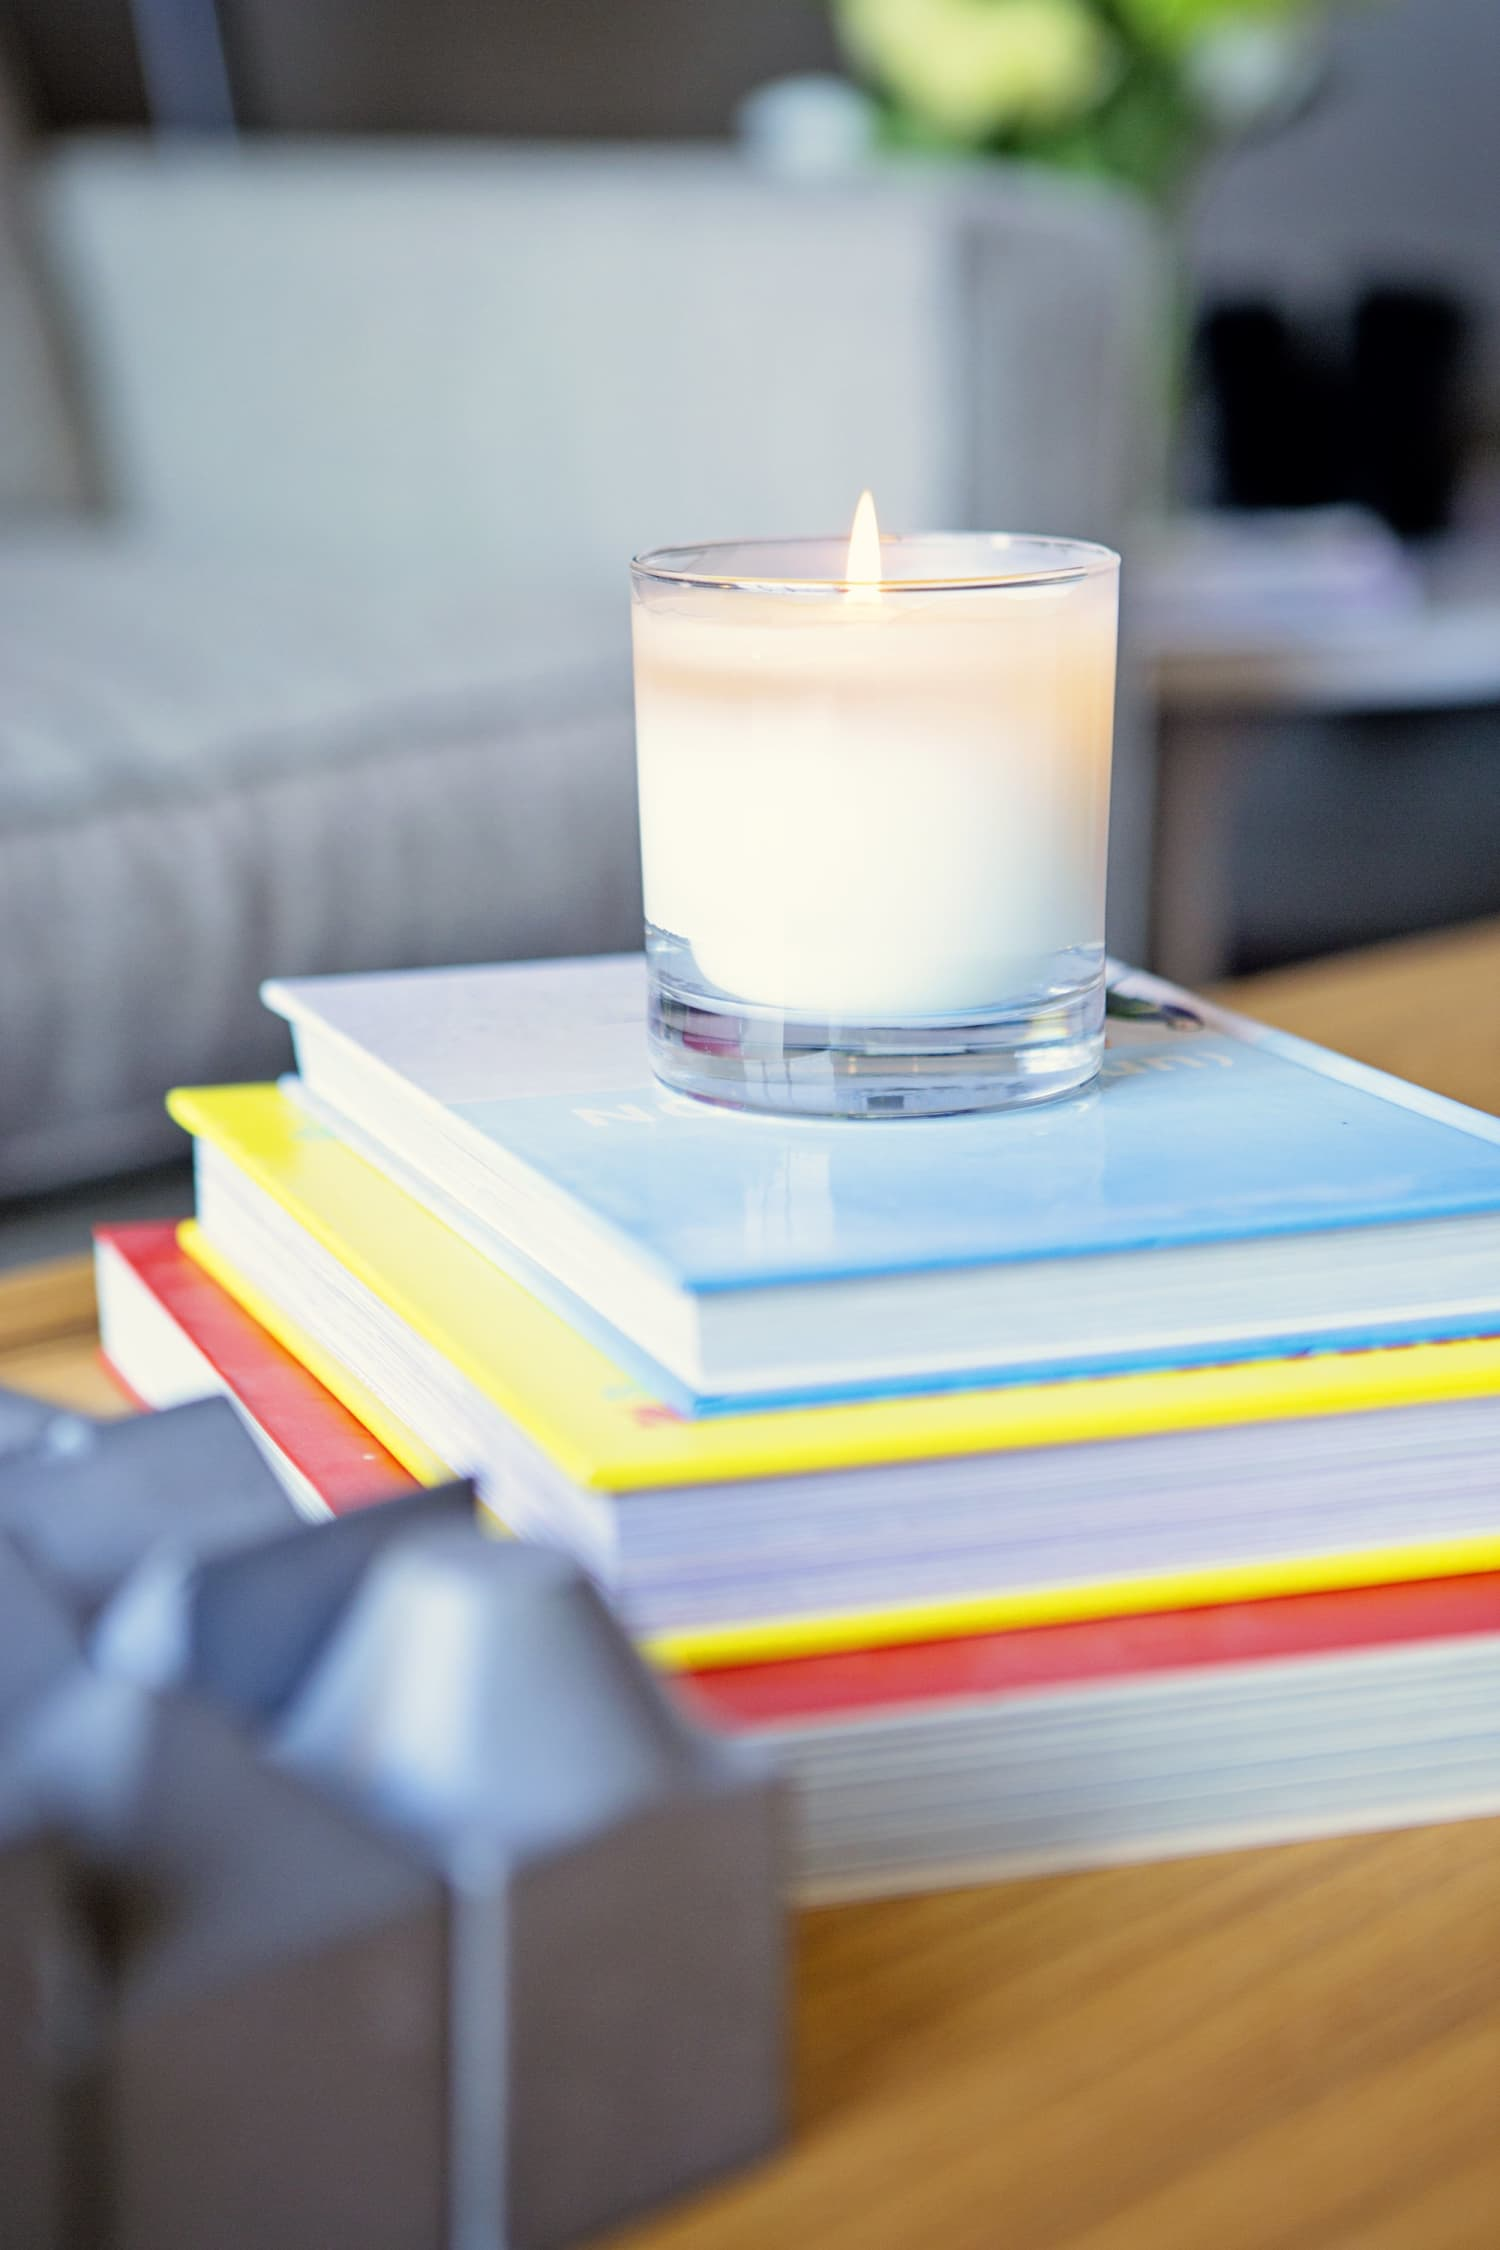 These Target Candles Couldn't Be Cuter (and They Smell Great, Too)